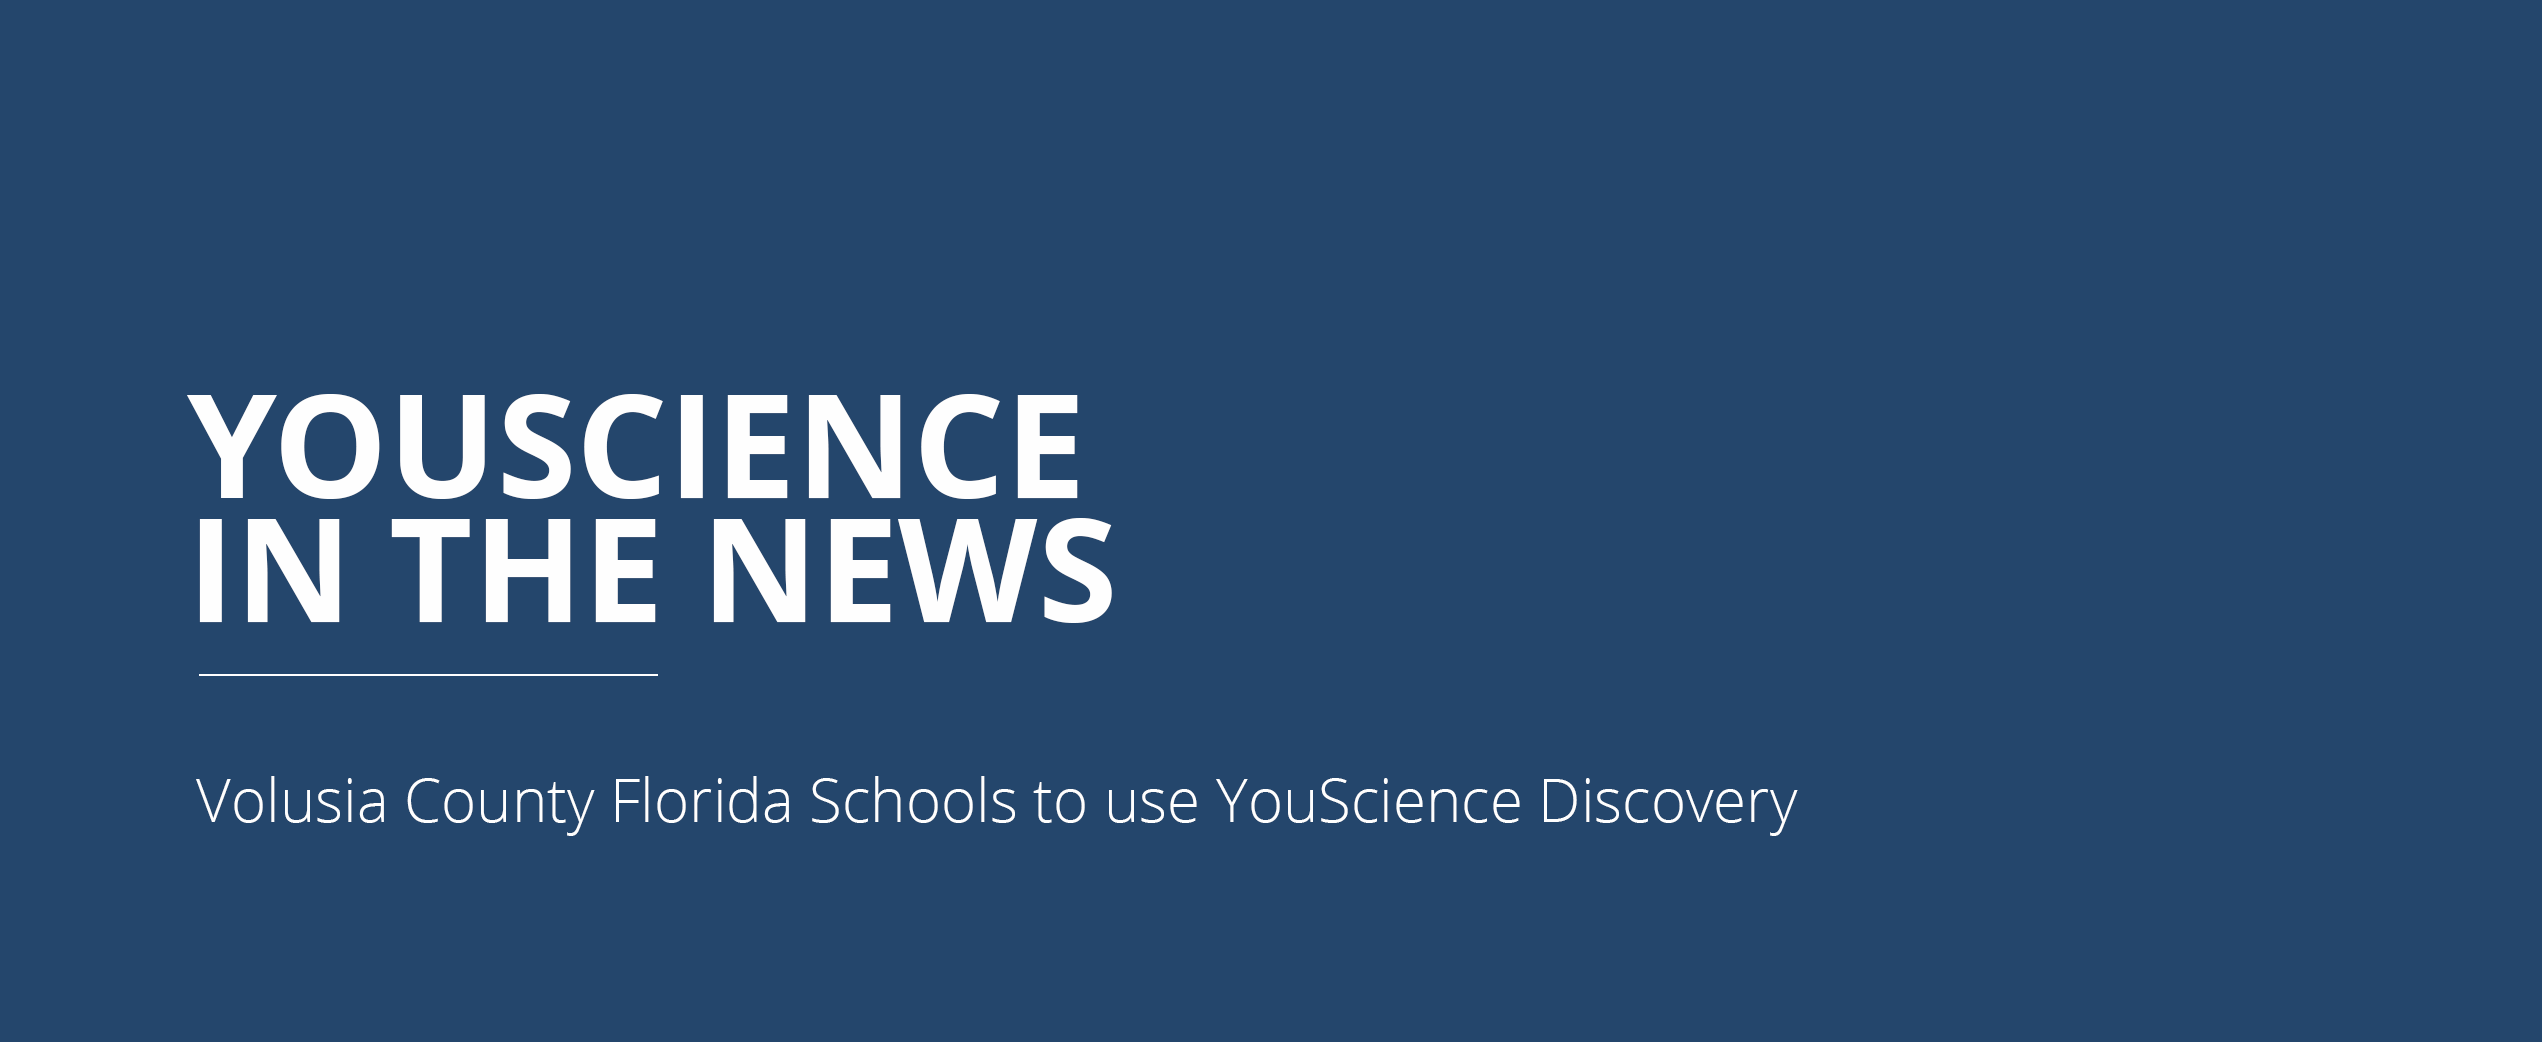 Daytona Regional Chamber and Volusia County Schools Bring YouScience Discovery to Local Schools